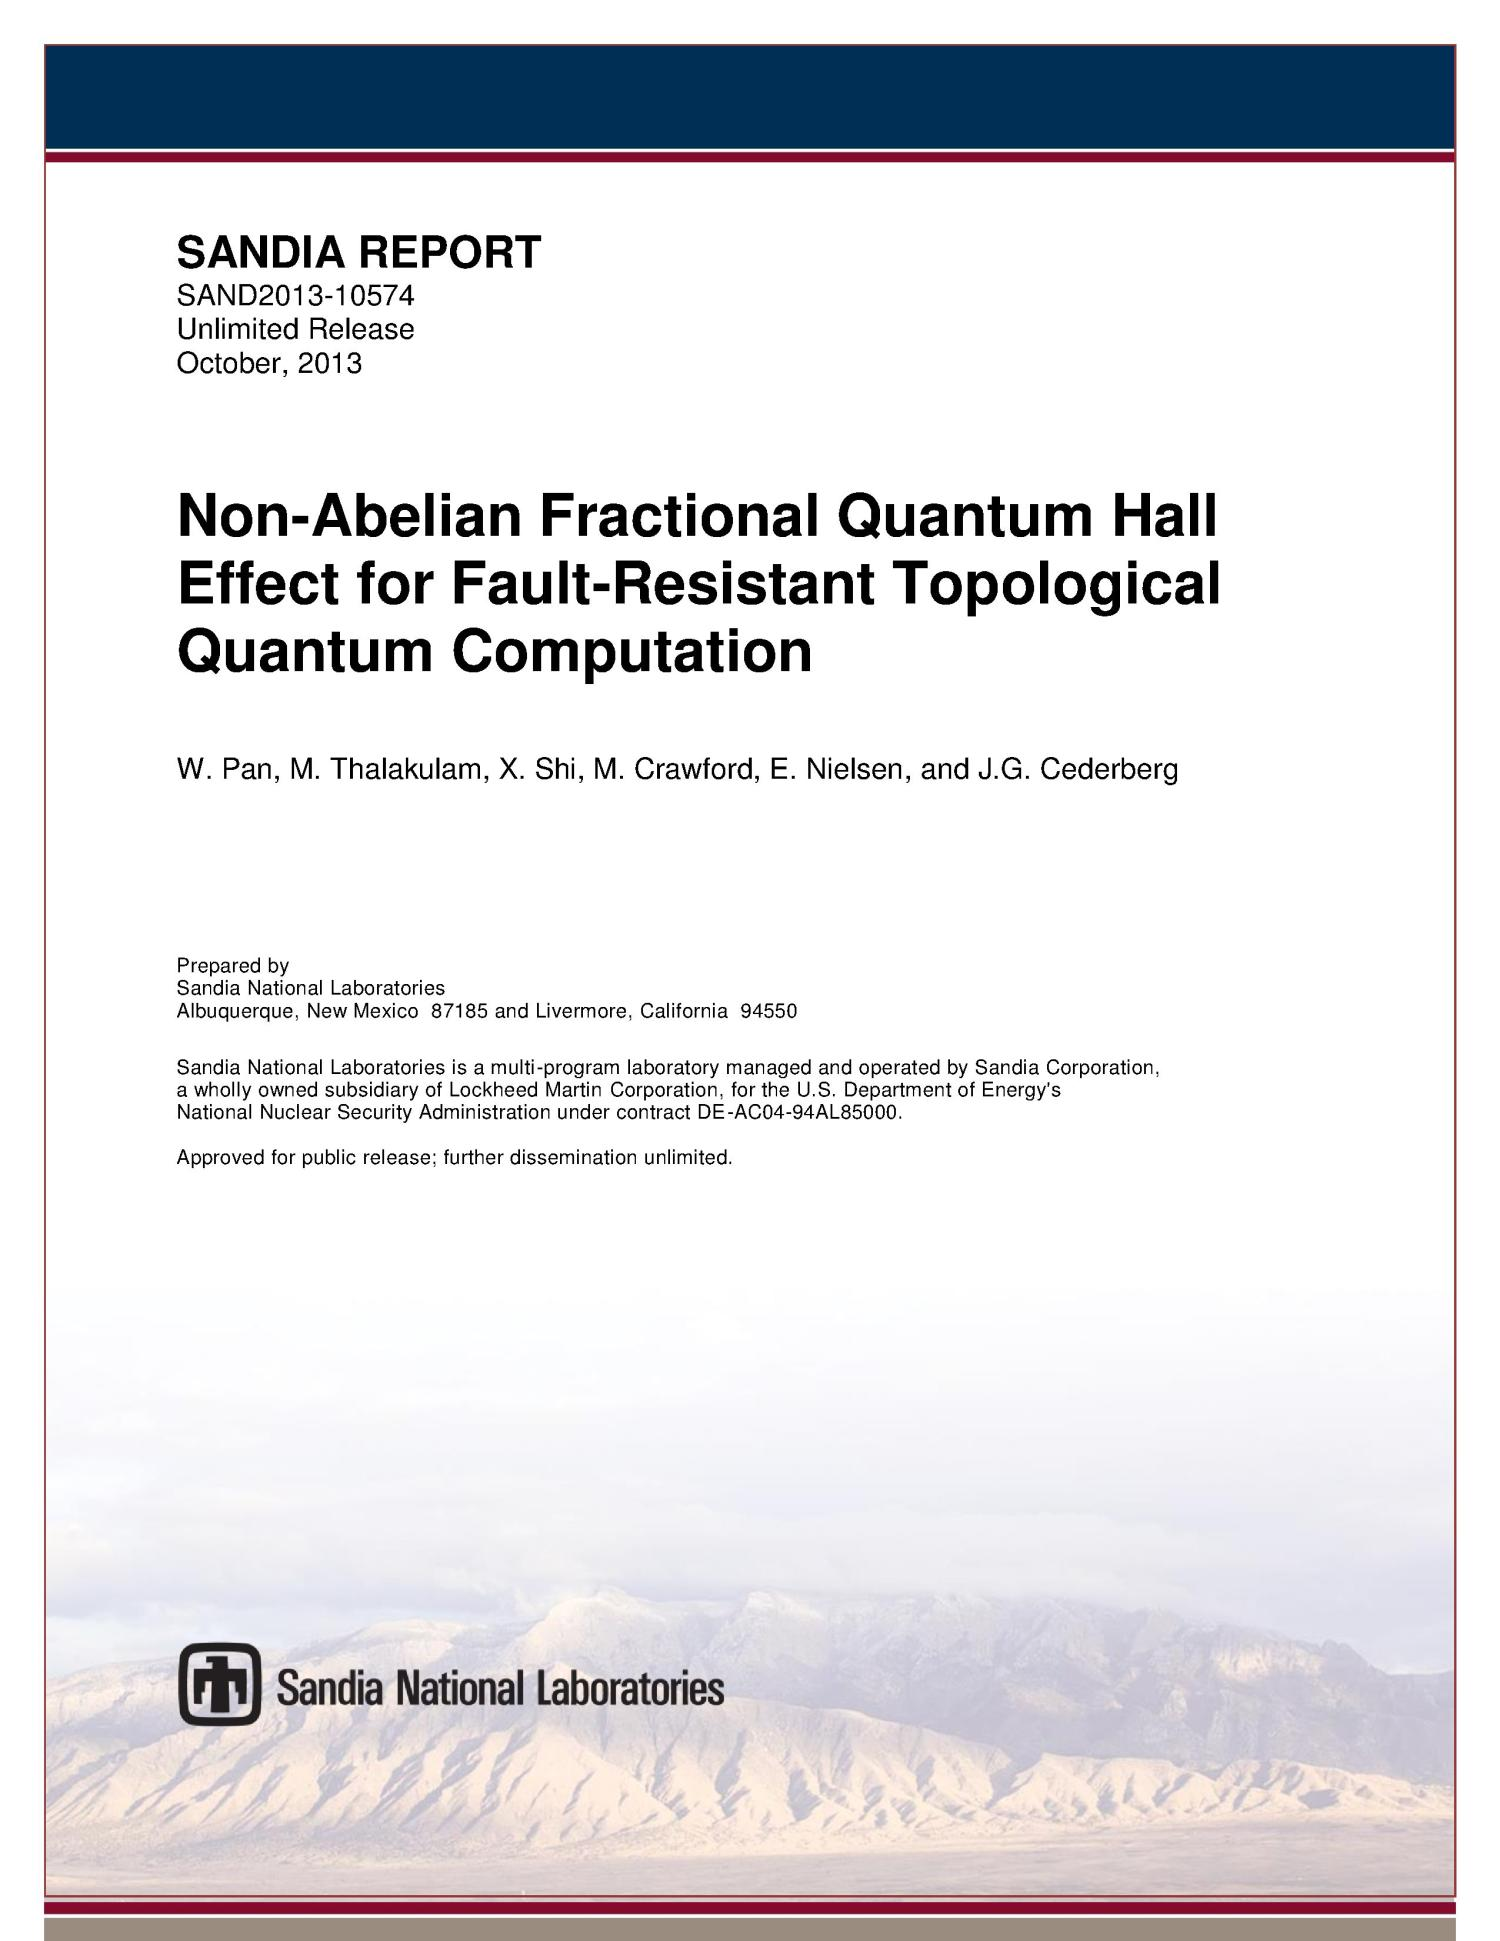 Non-abelian fractional quantum hall effect for fault-resistant topological quantum computation.                                                                                                      [Sequence #]: 1 of 41